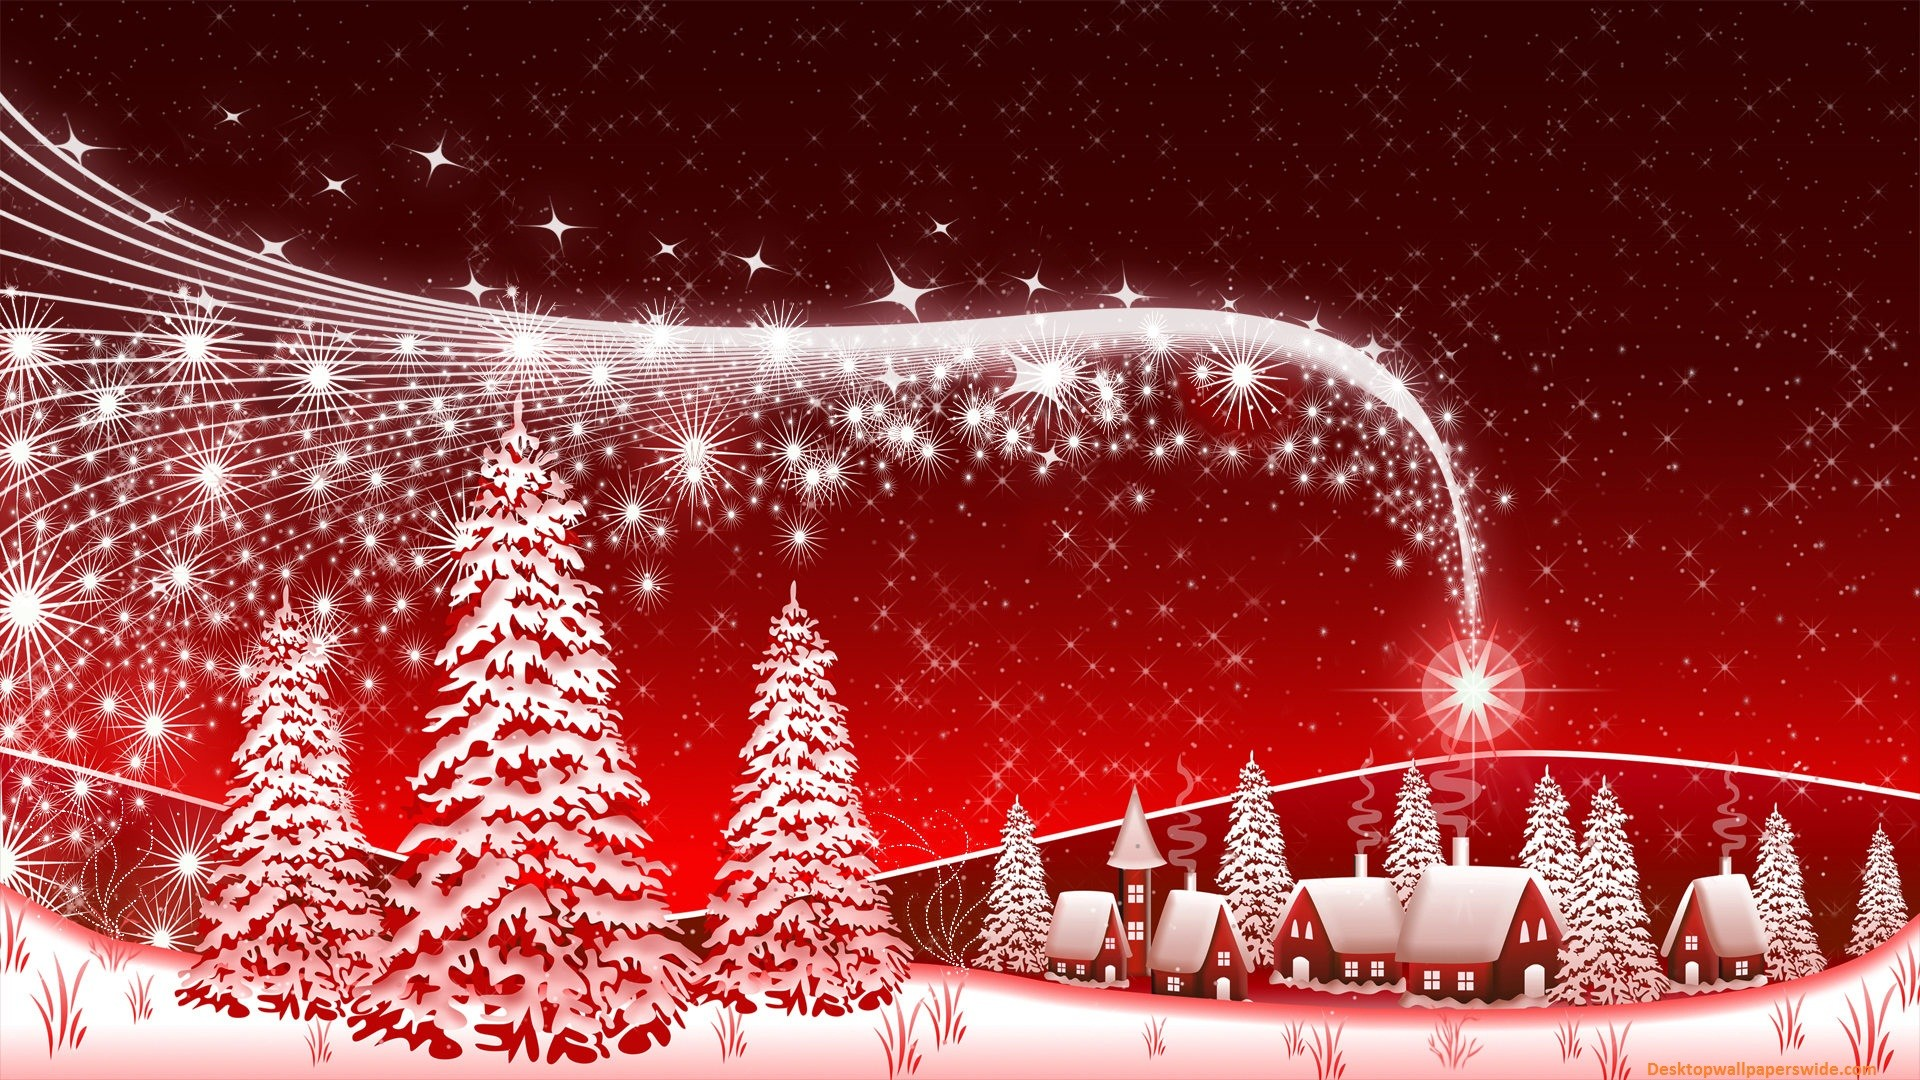 1920x1080 Christmas Full HD Background